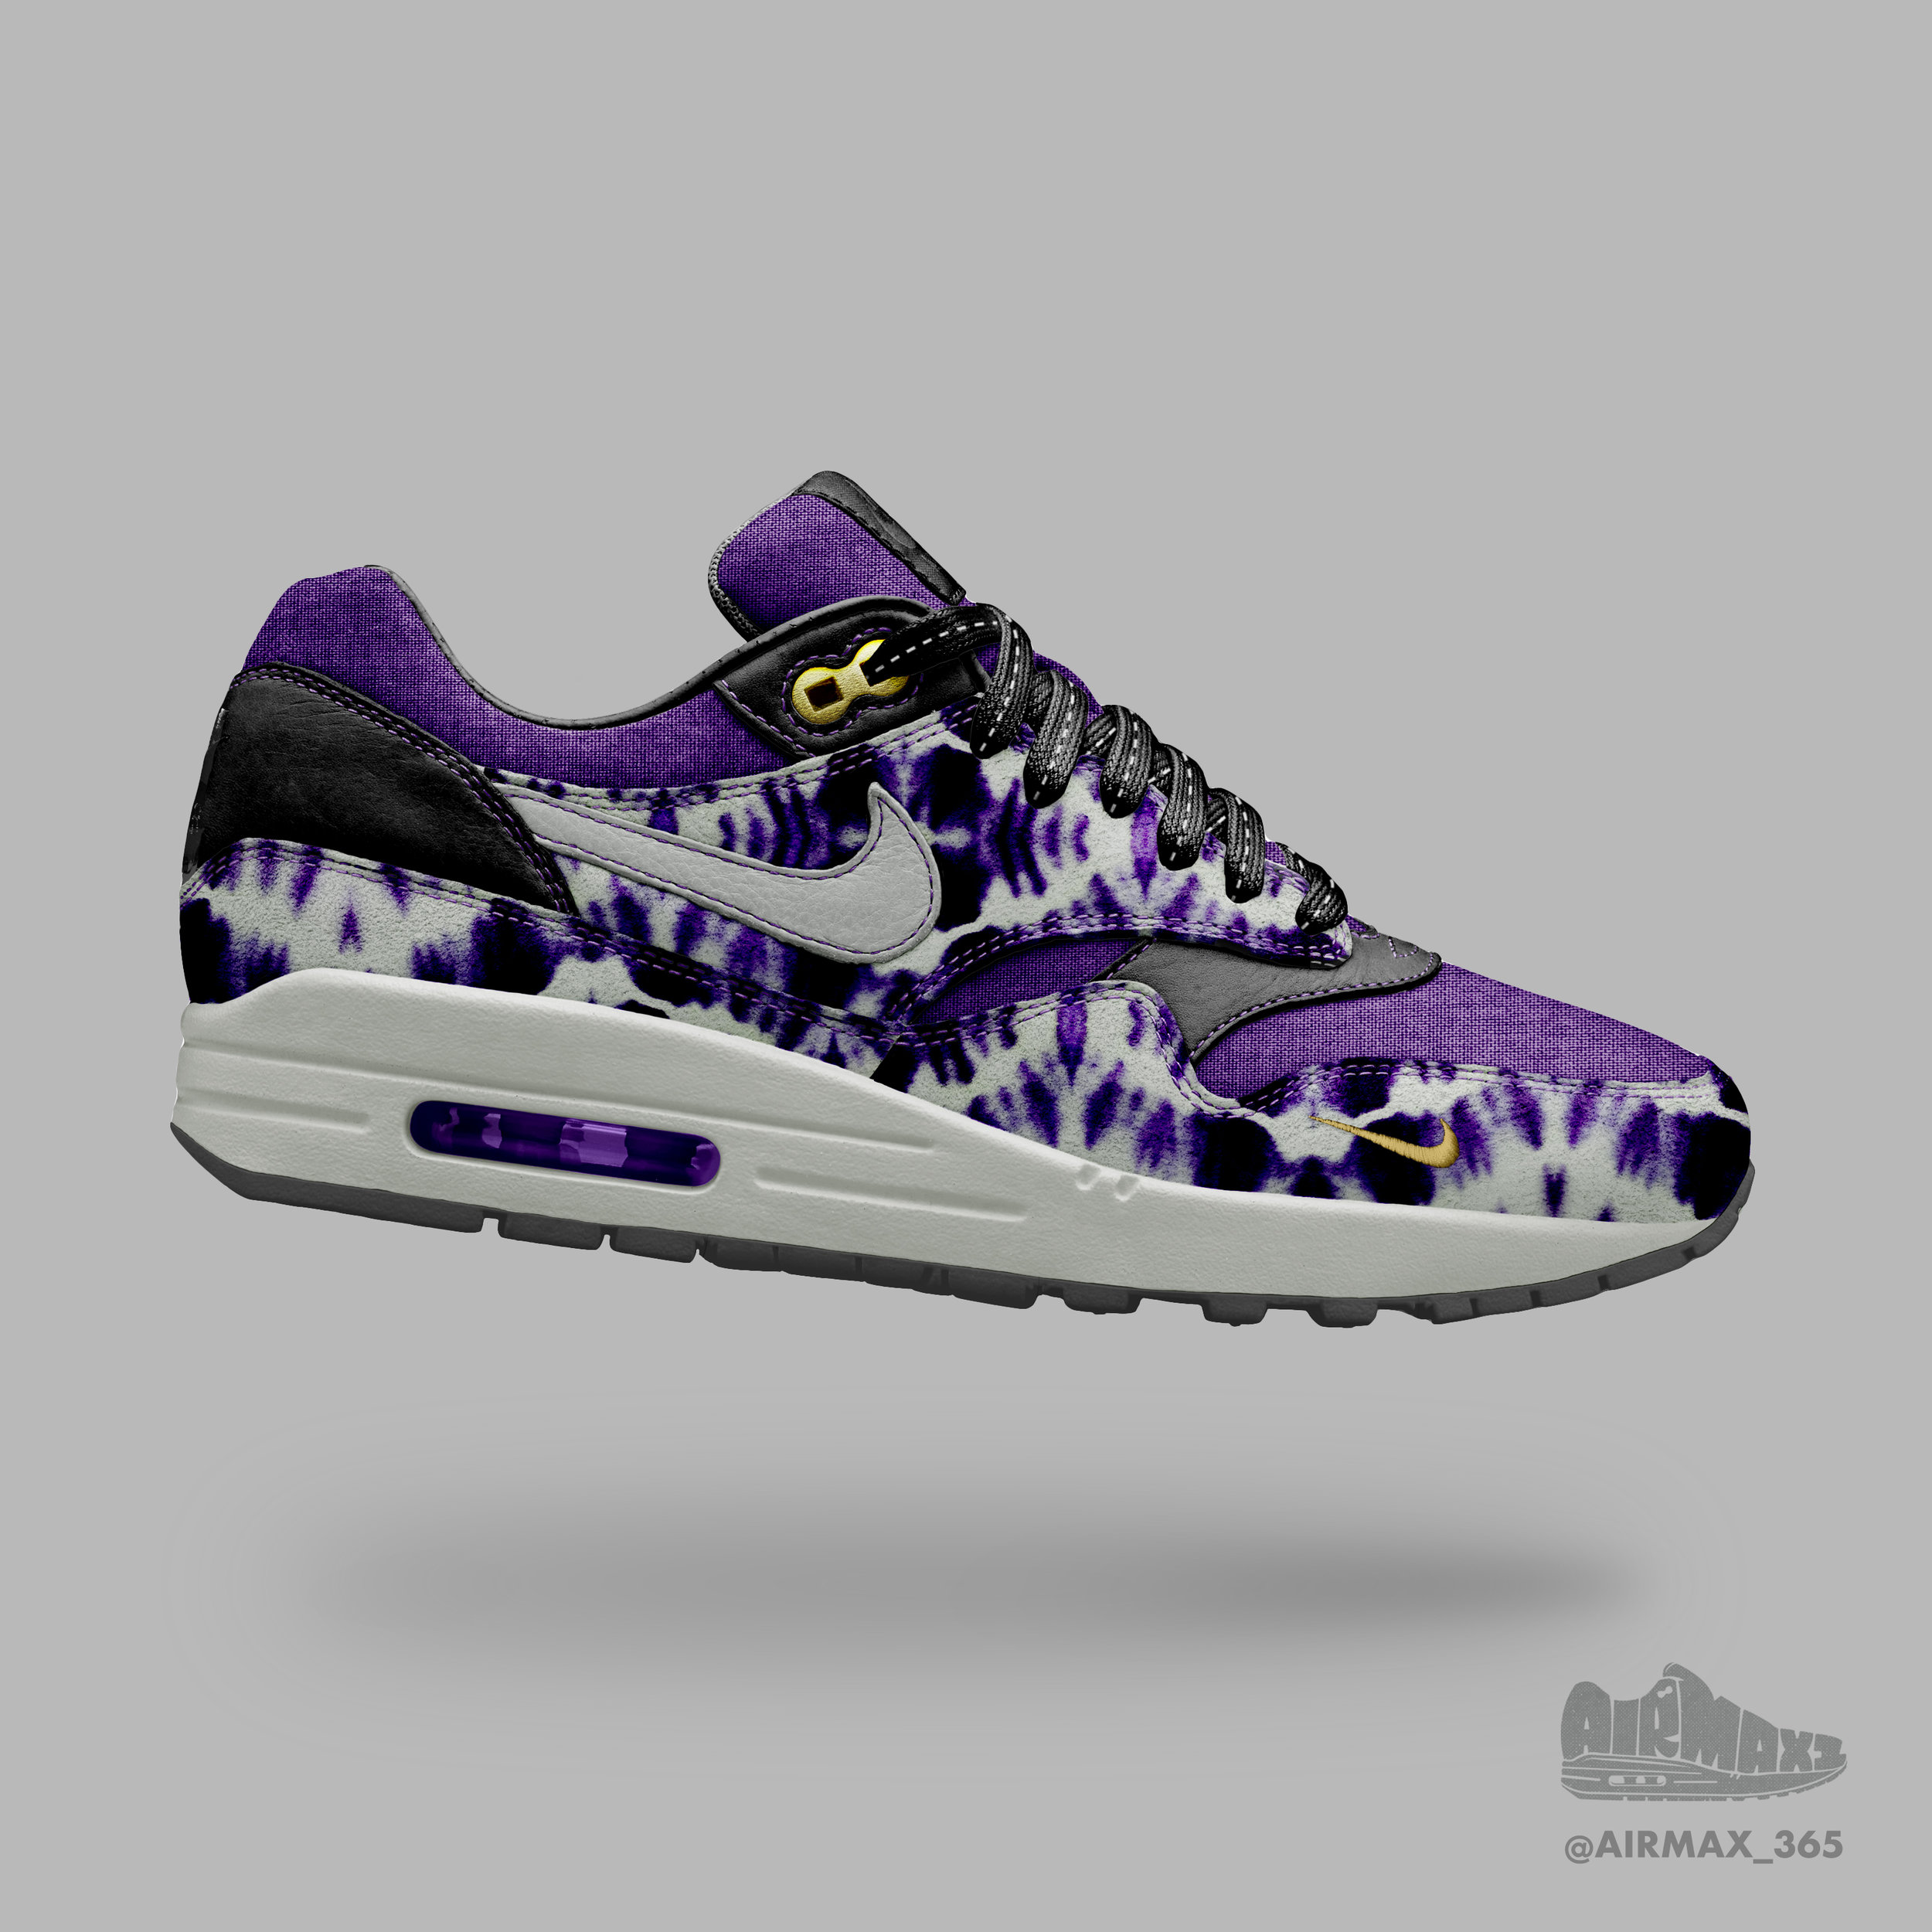 Day 220: Air Max 1 Violet Haze